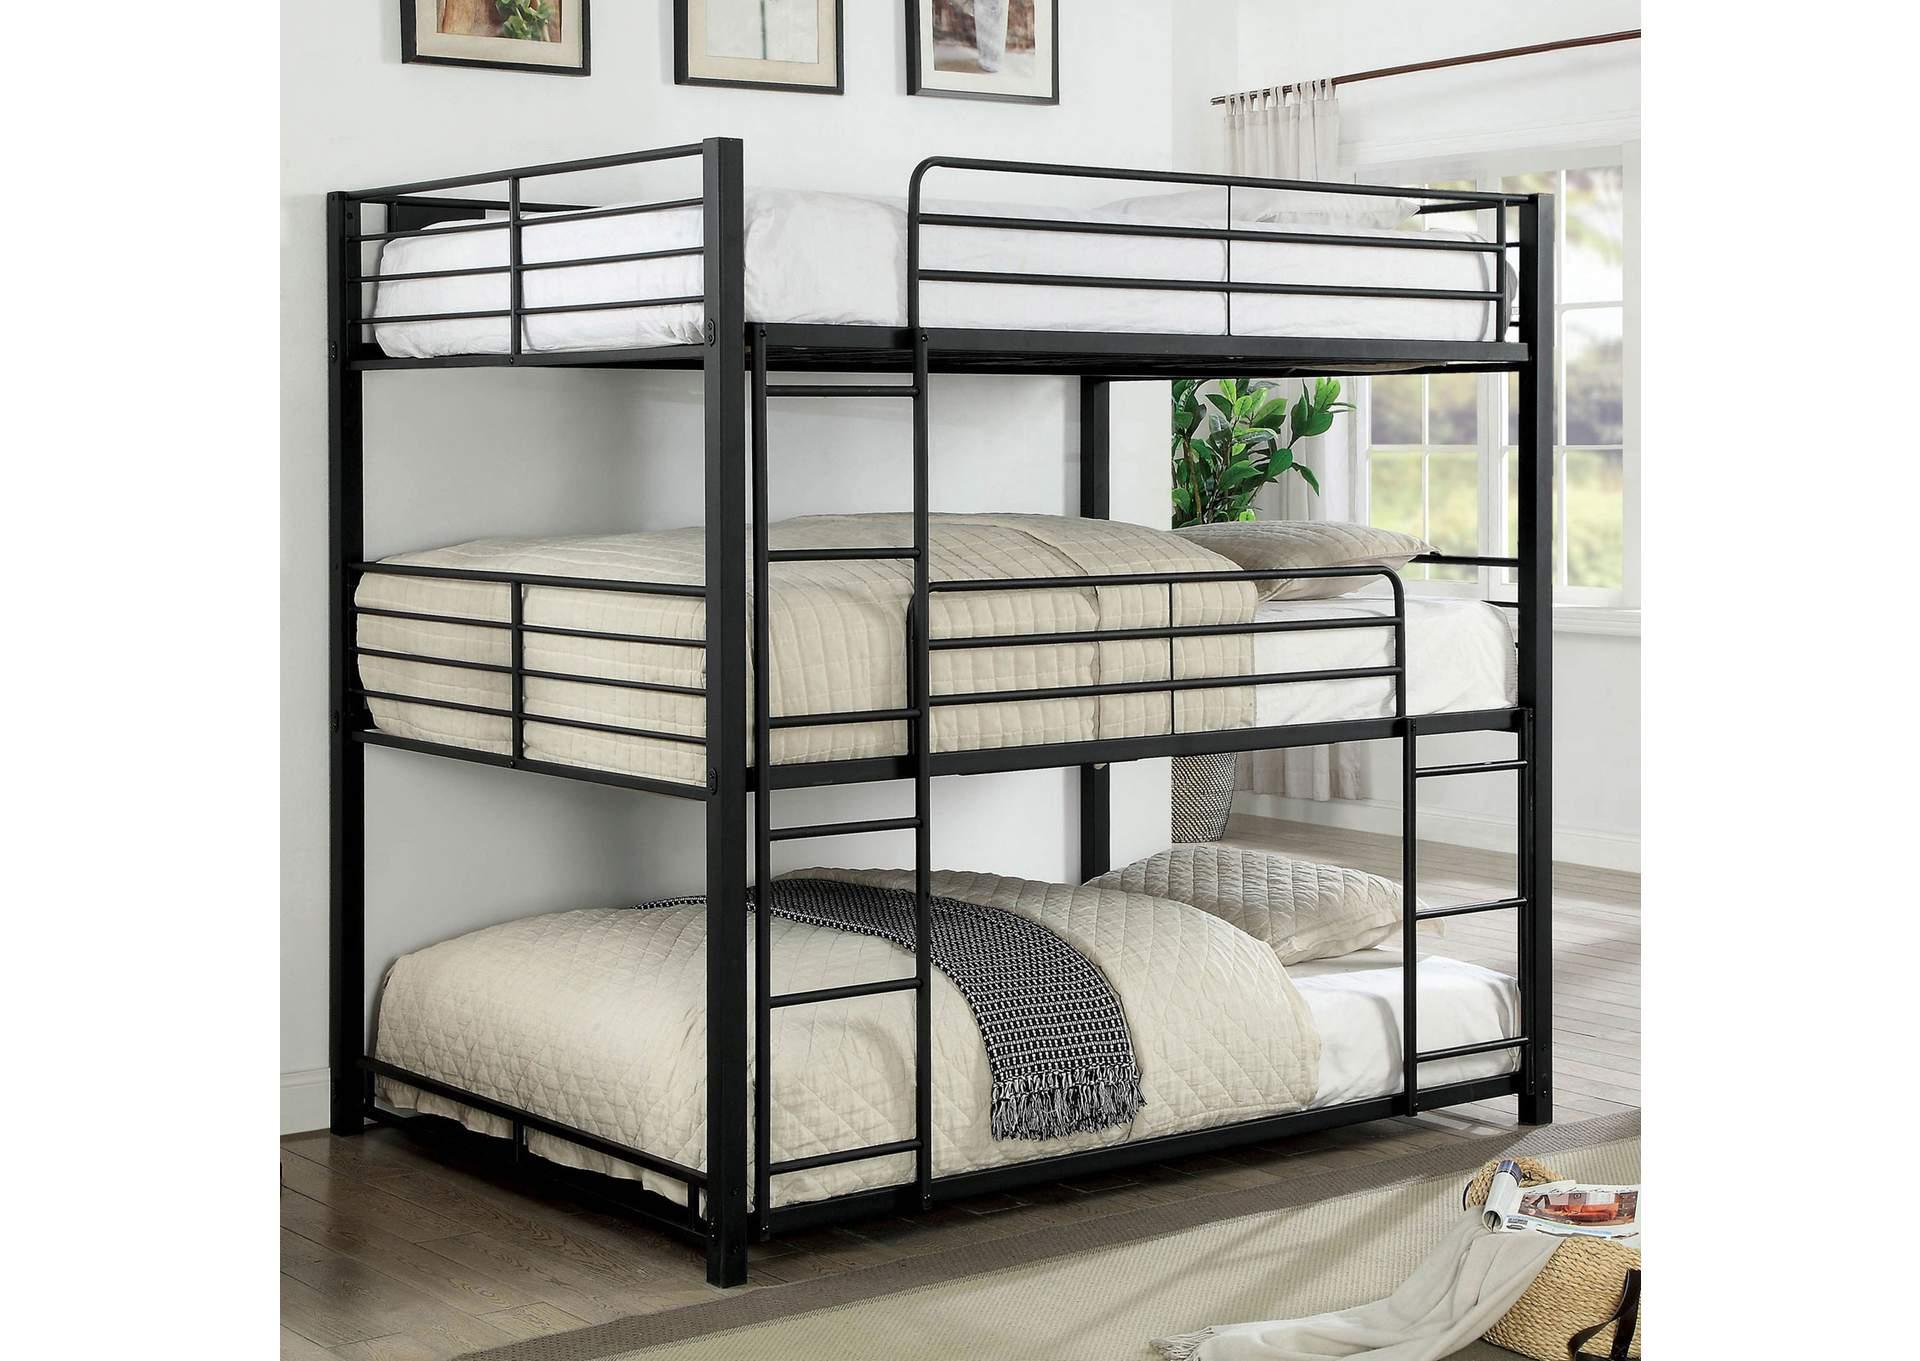 Olga Sand Black Full Triple Decker Bunk Bed,Furniture of America